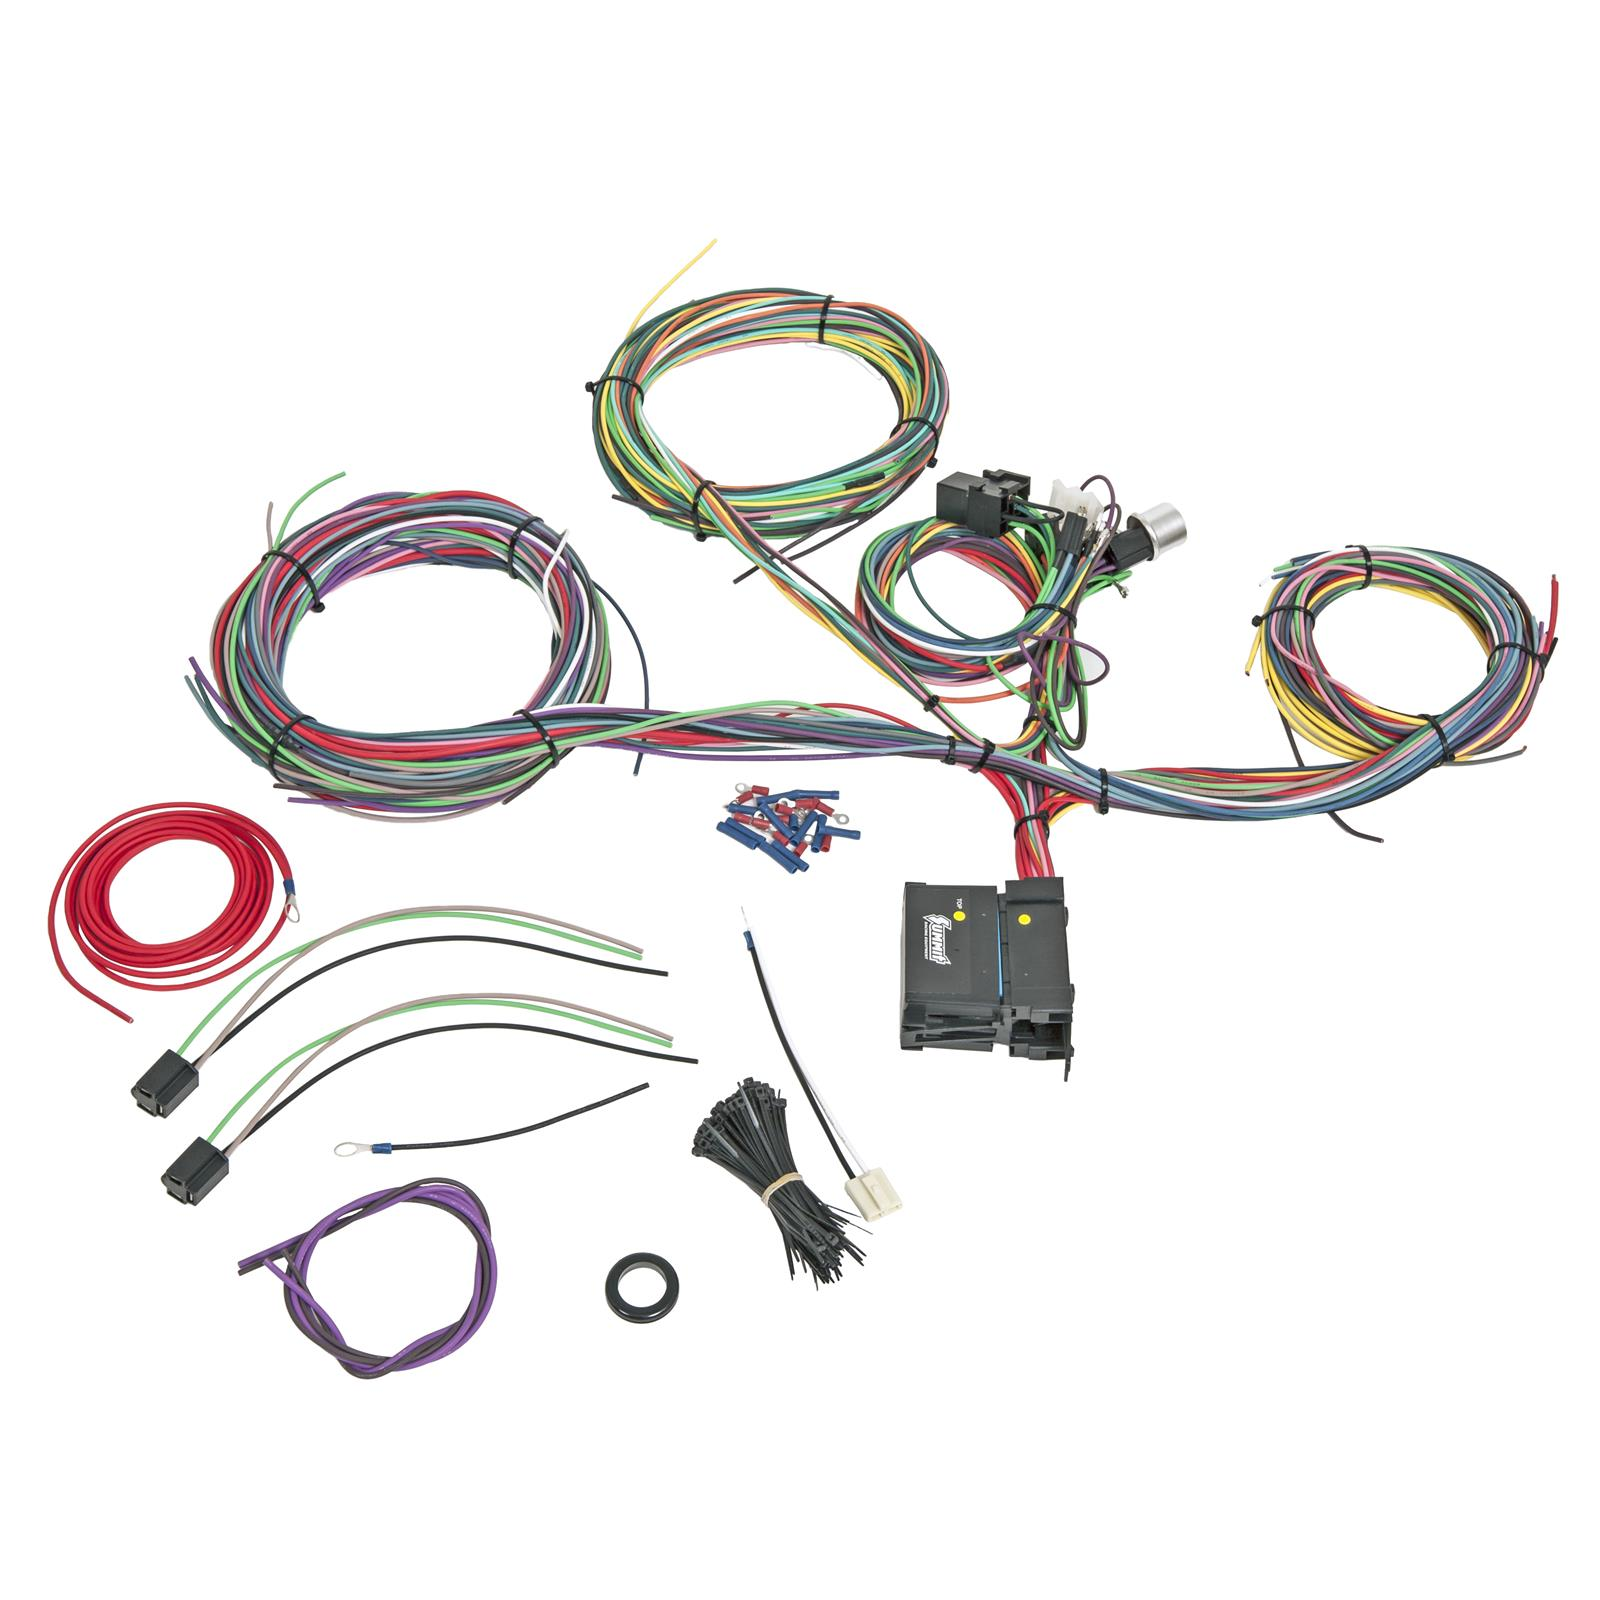 sum 890021_xl summit racing� 18 circuit universal wiring harnesses sum 890021 packard wiring harness at n-0.co